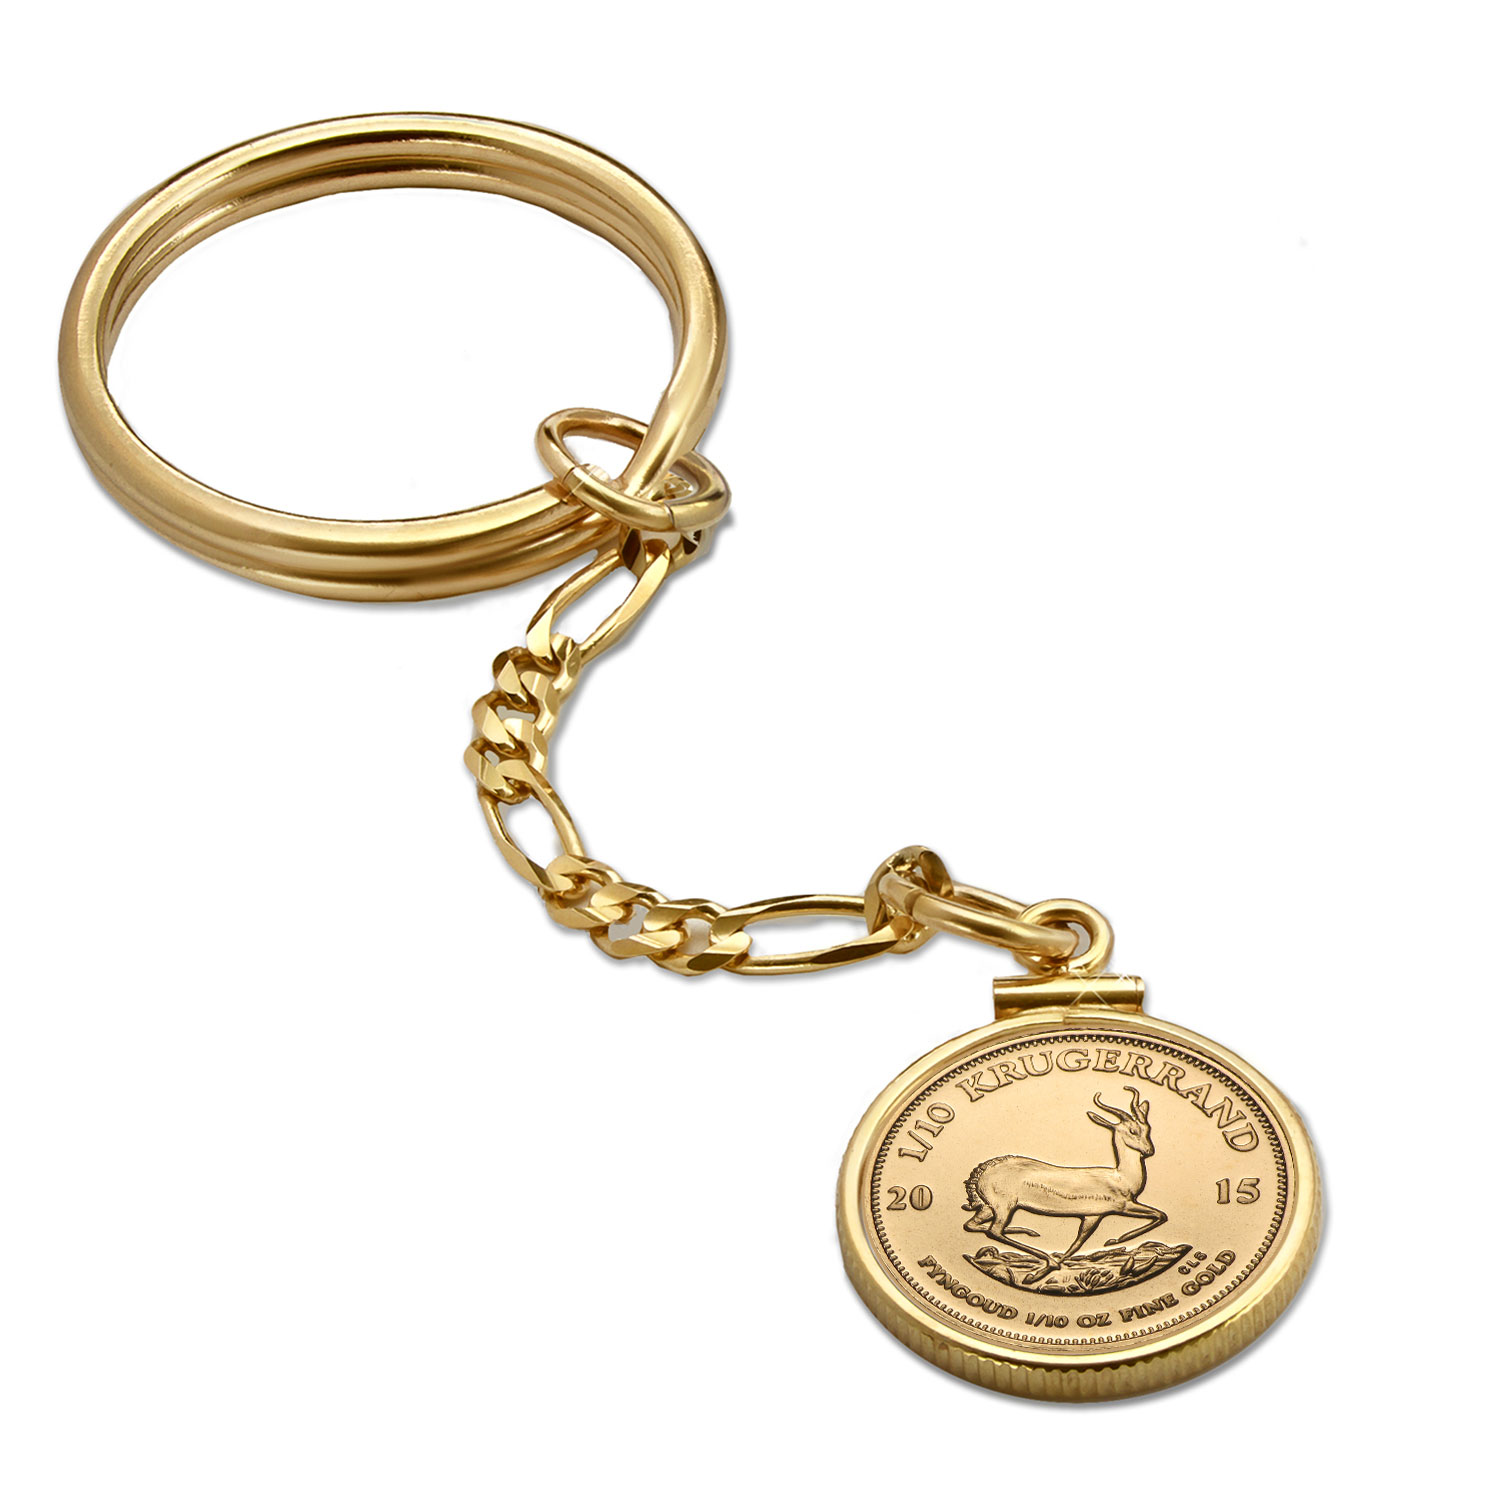 2015 1/10 oz Gold Krugerrand Key Ring